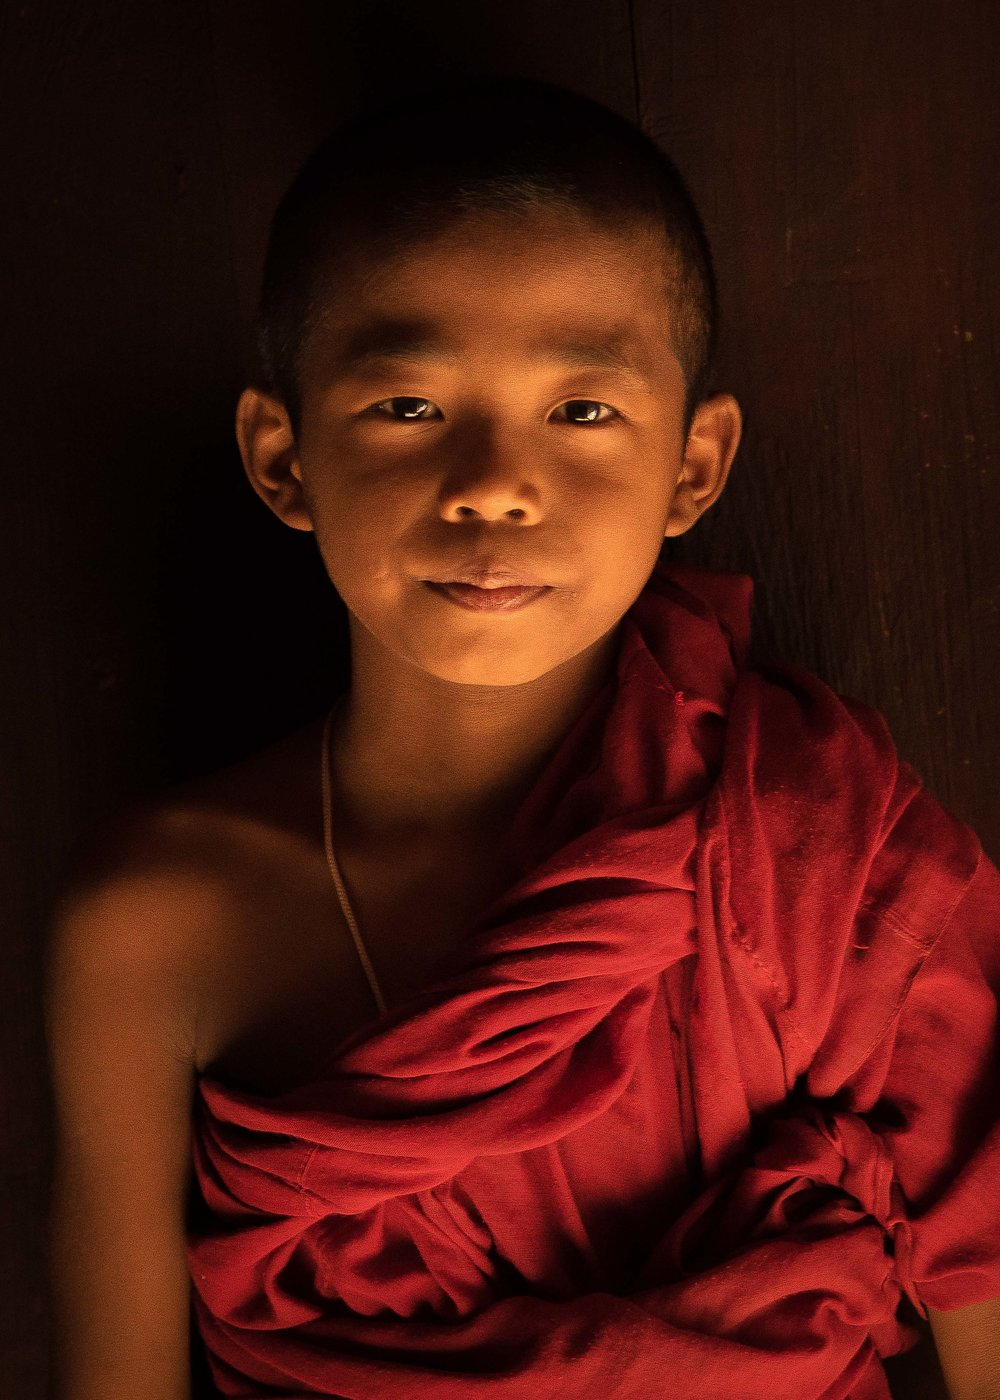 Young Monk, Mandalay, Myanmar 2015